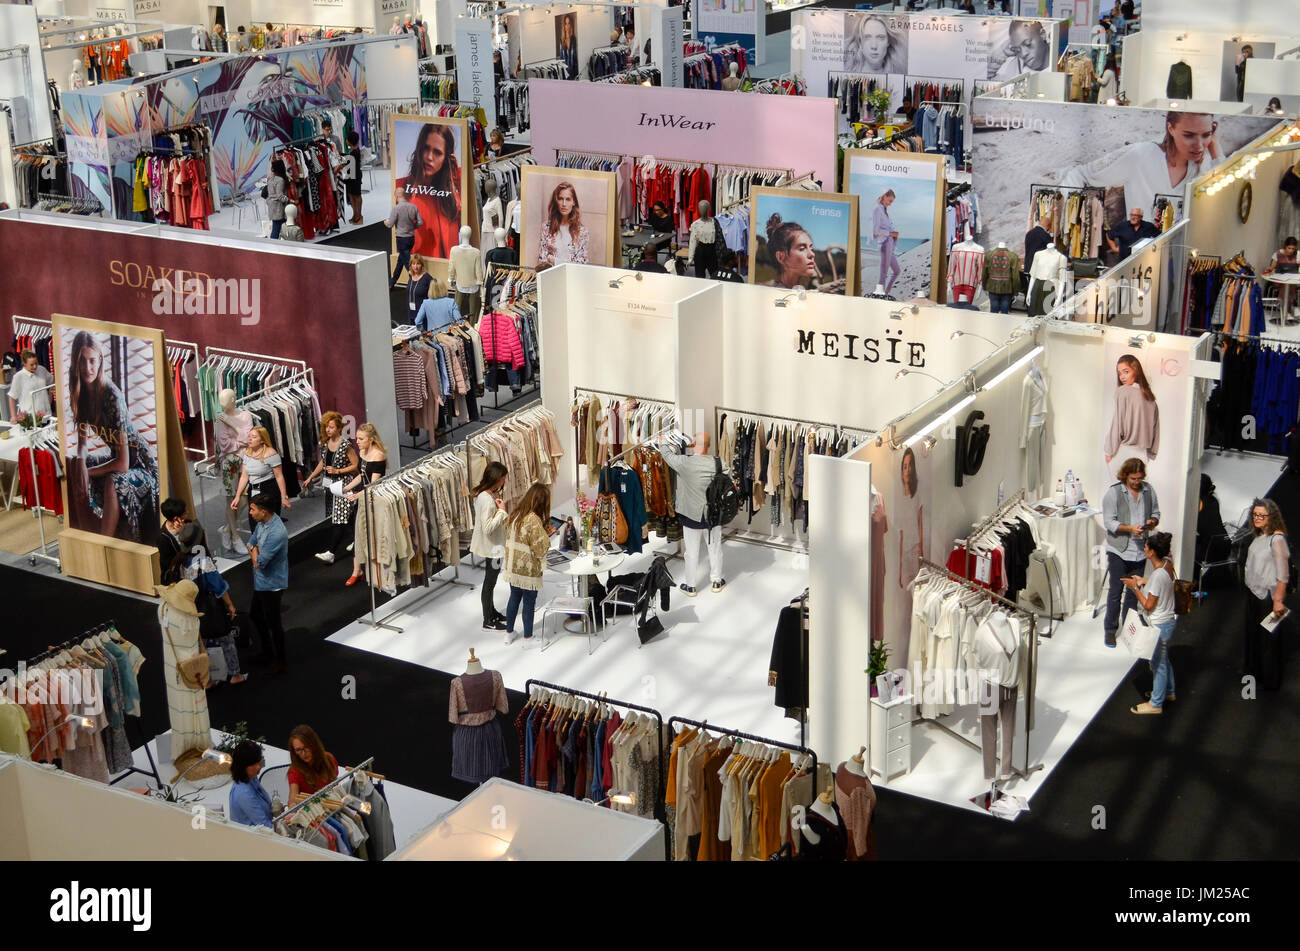 Clothing stands at Pure London, Olympia, London, UK. Pure London, the UK's leading trade fashion exhibition opened its doors 23-25th July 2017, featuring two halls of trade stands from leading fashion and accessories designers, lectures from industry experts, and fashion shows on two different catwalks throughout each day. Fashion buyers were out in force to see the new season's collections. 25th July 2017. Credit: Antony Nettle/Alamy Live News - Stock Image